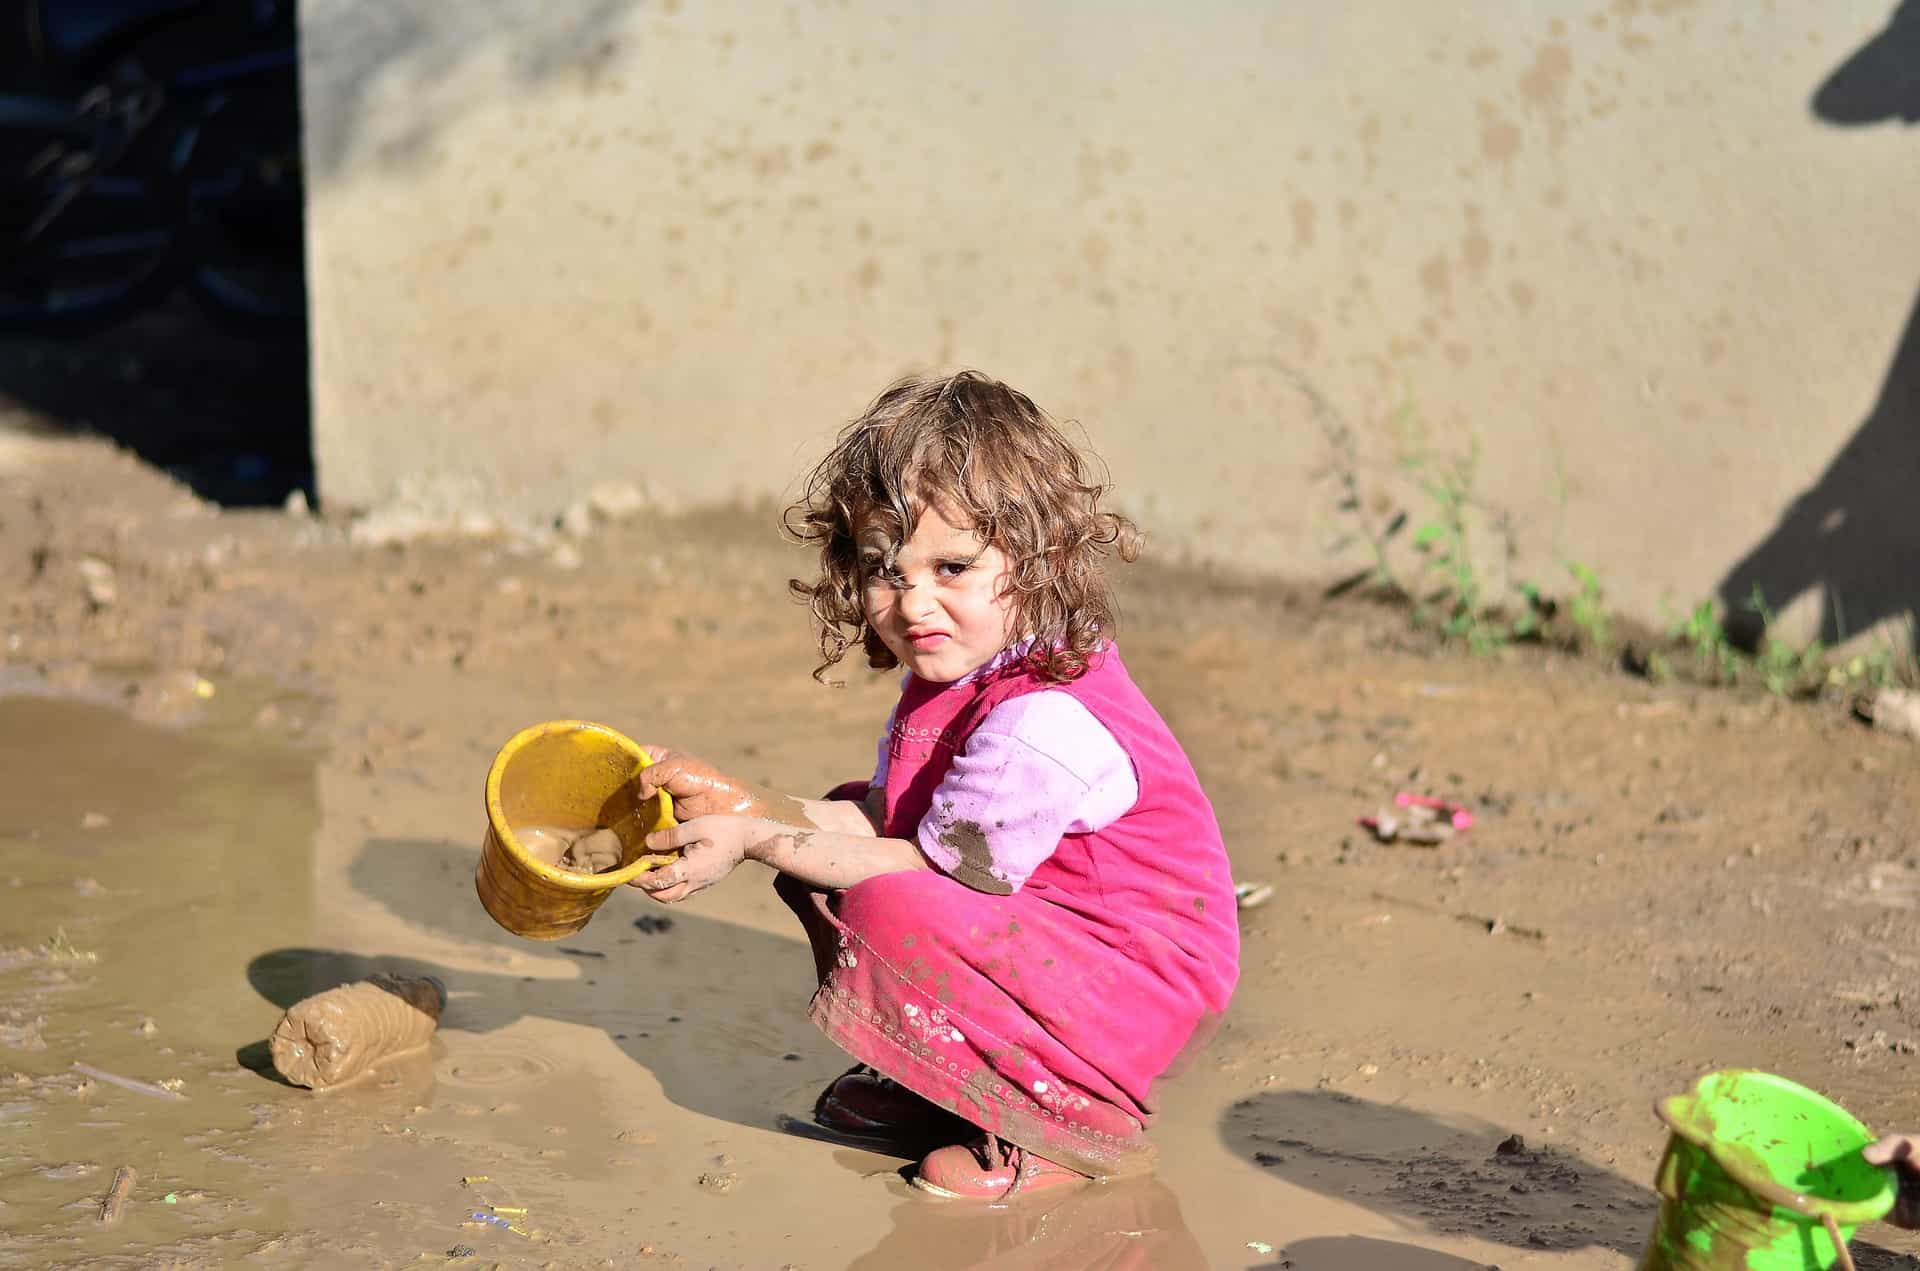 Little girl holding a toy bucket and she is playing at their backyard